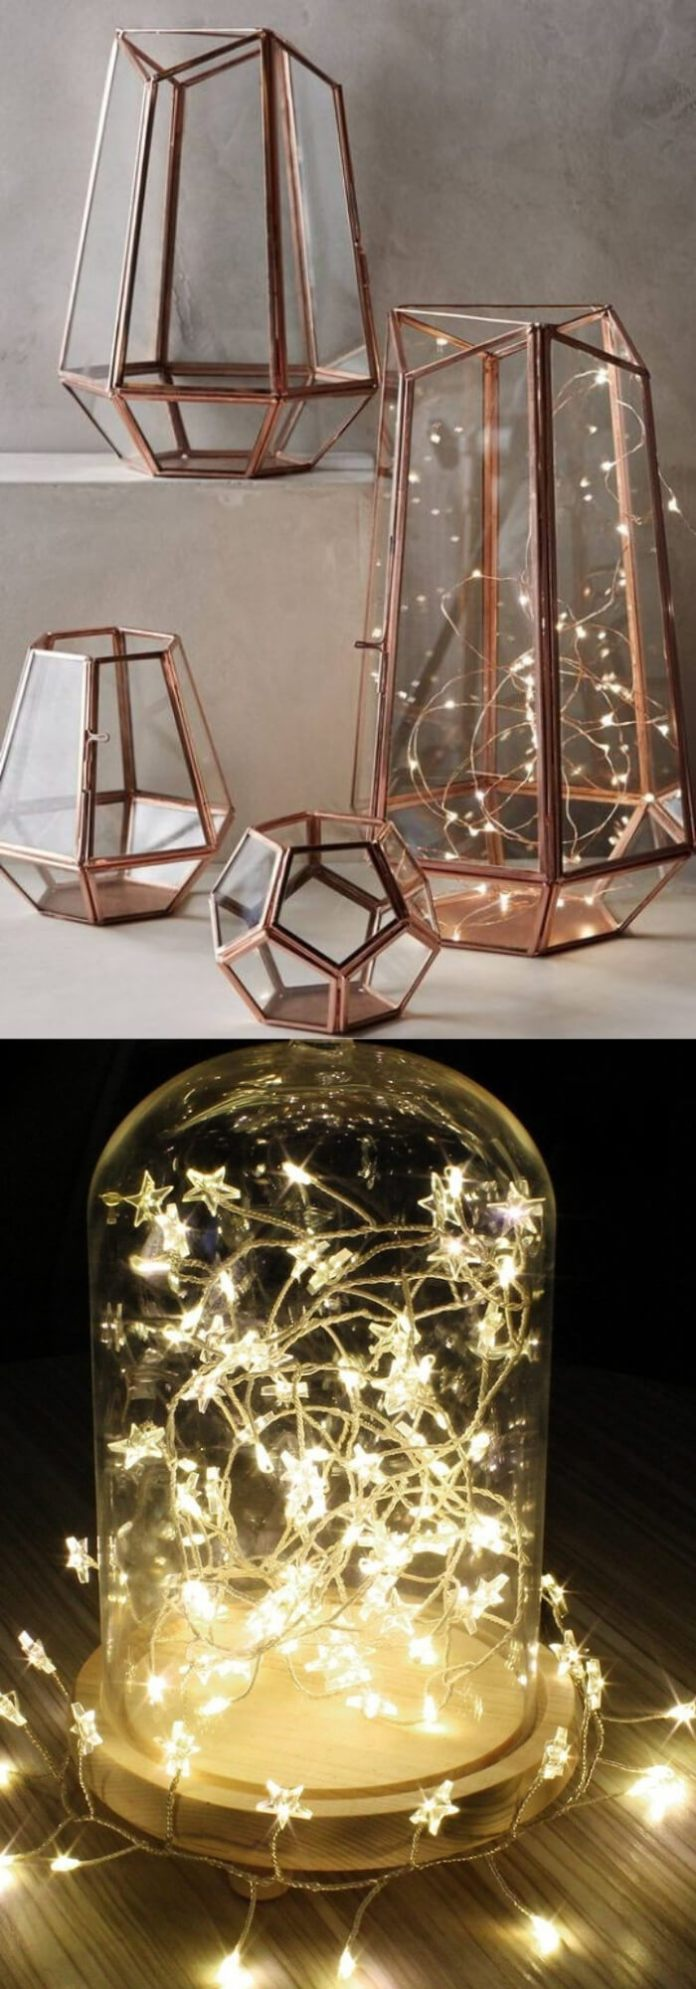 Glow jars | Best Fairy Light Decoration Ideas